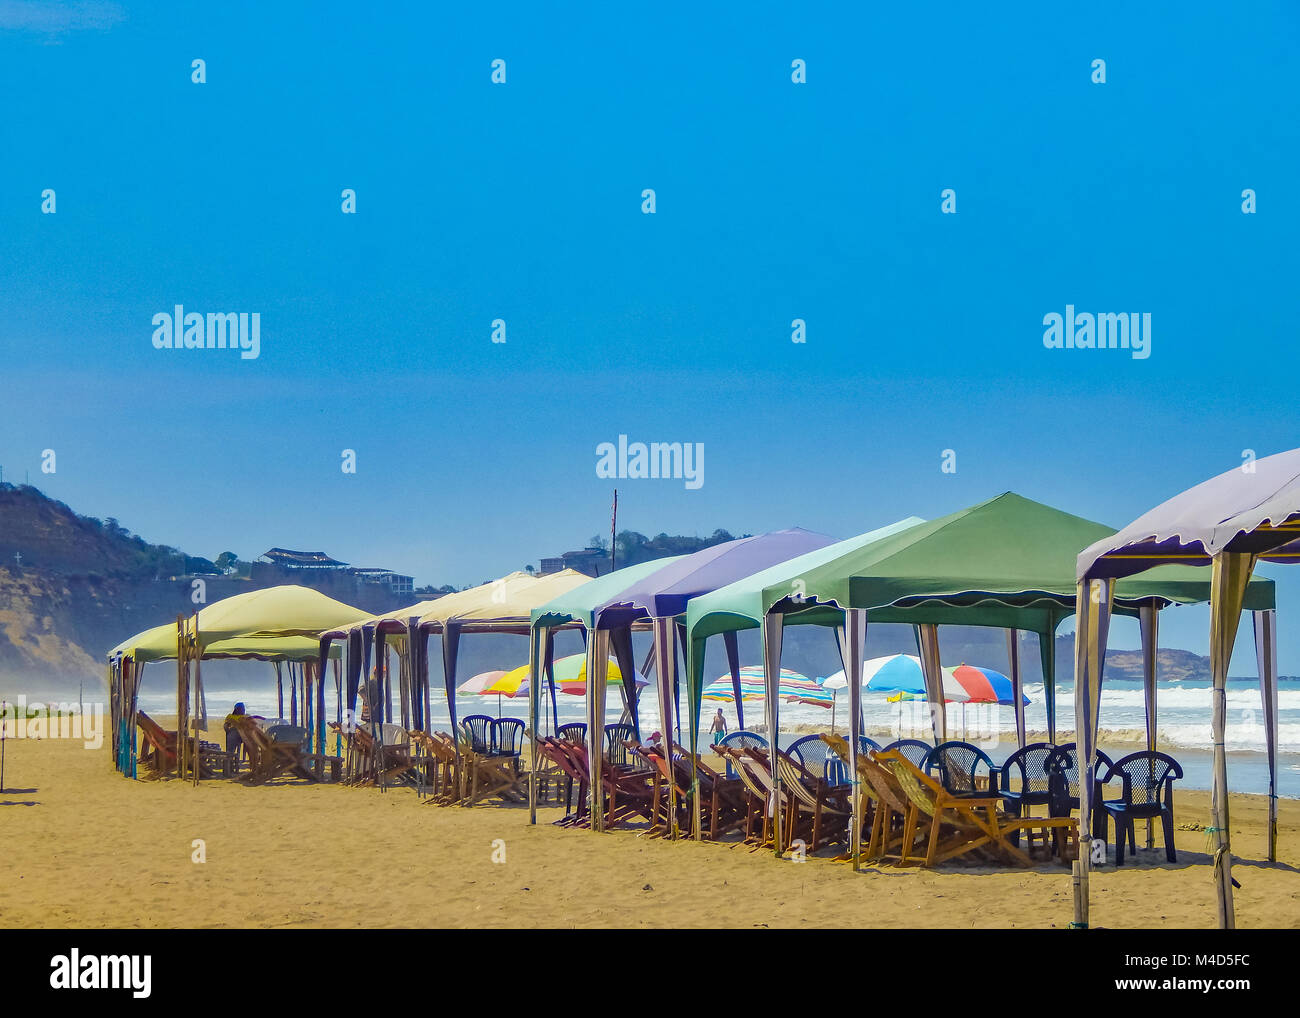 Tents at Beach Olon Ecuador - Stock Image